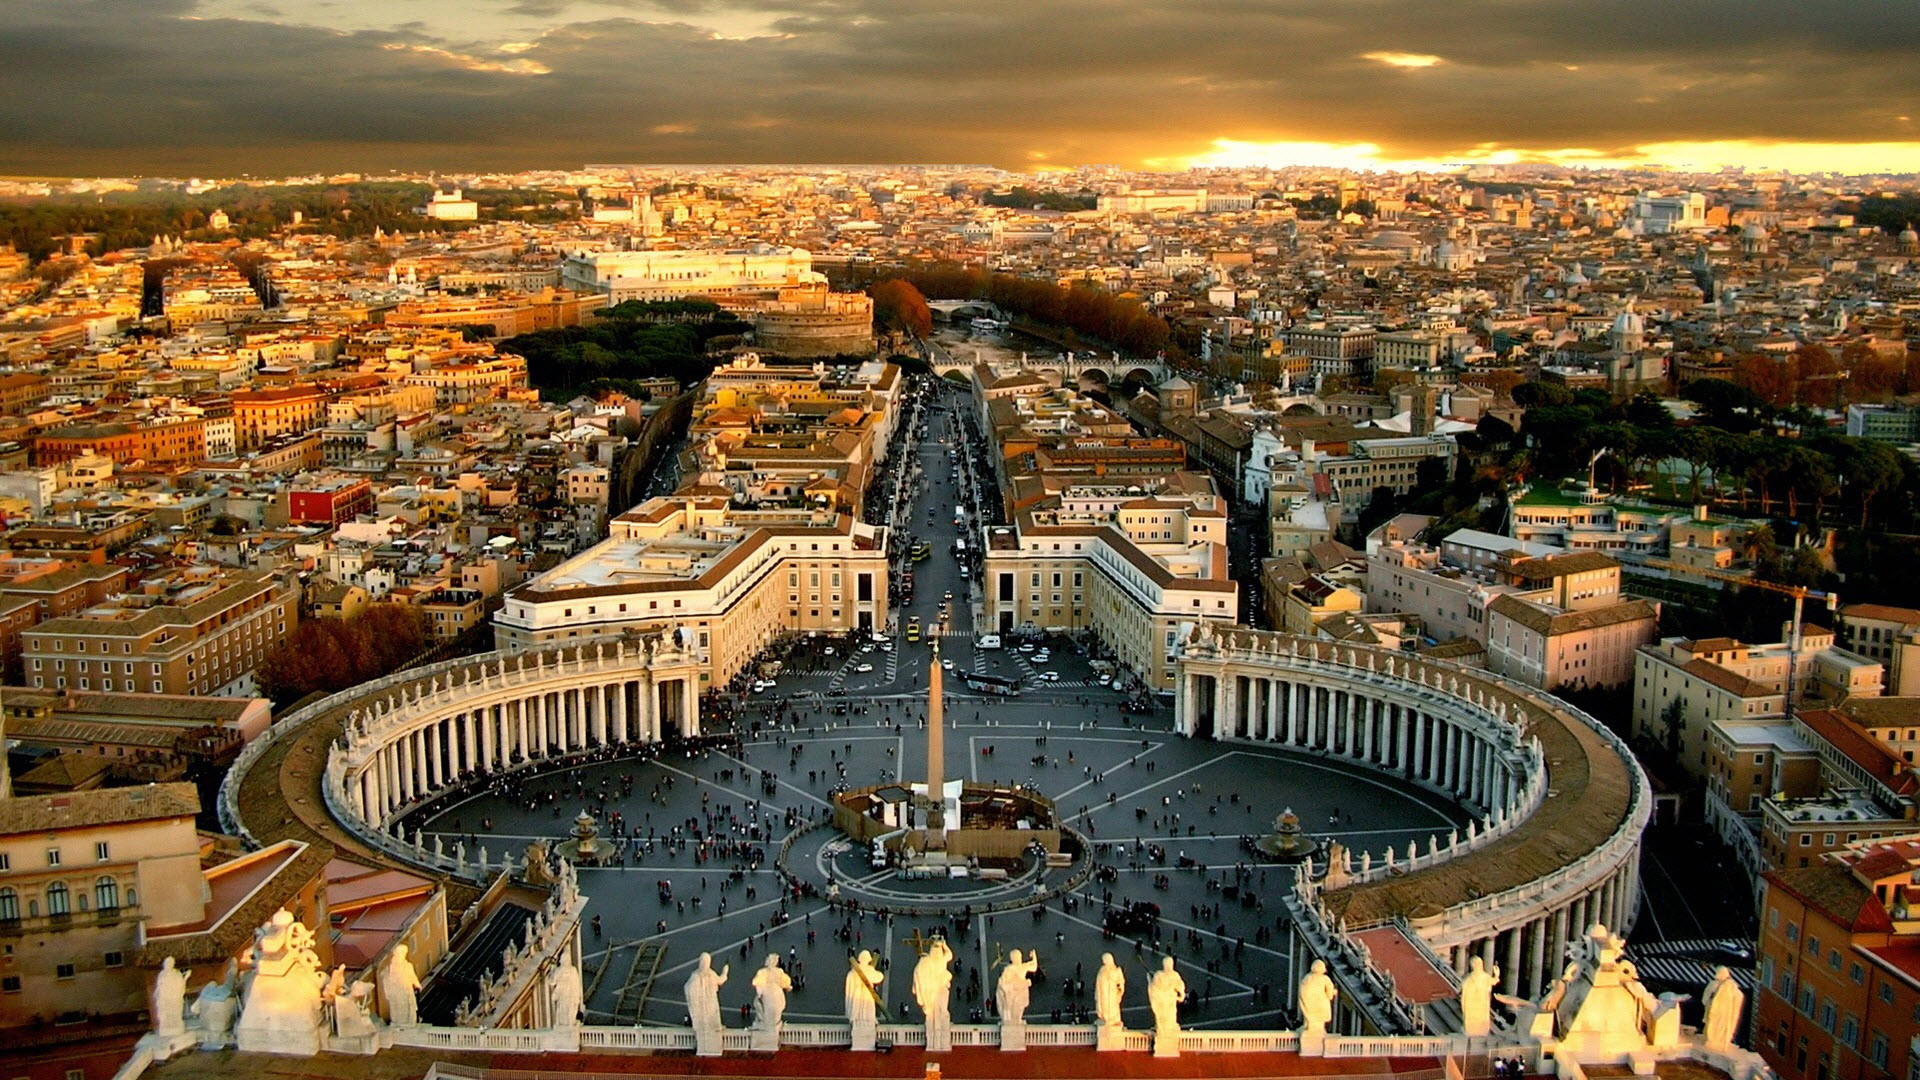 Vatican City overview